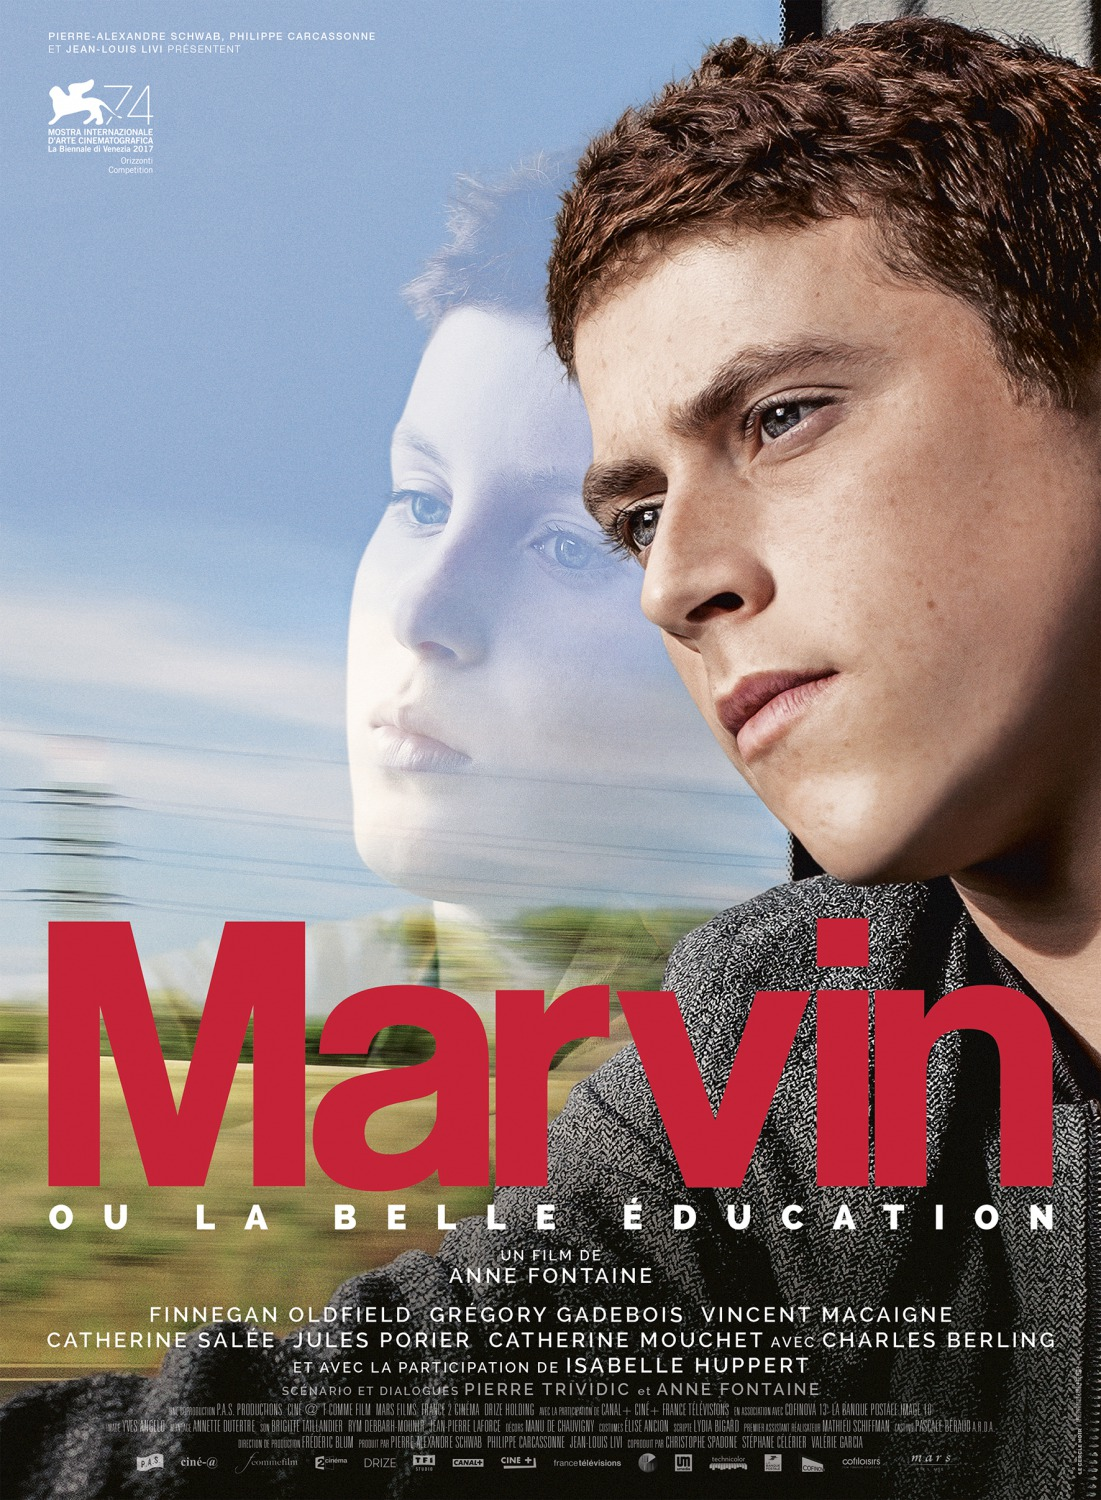 LONDON FILM FESTIVAL: REINVENTING MARVIN from director Anne Fontaine screened at Ciné Lumière (09 OCT).